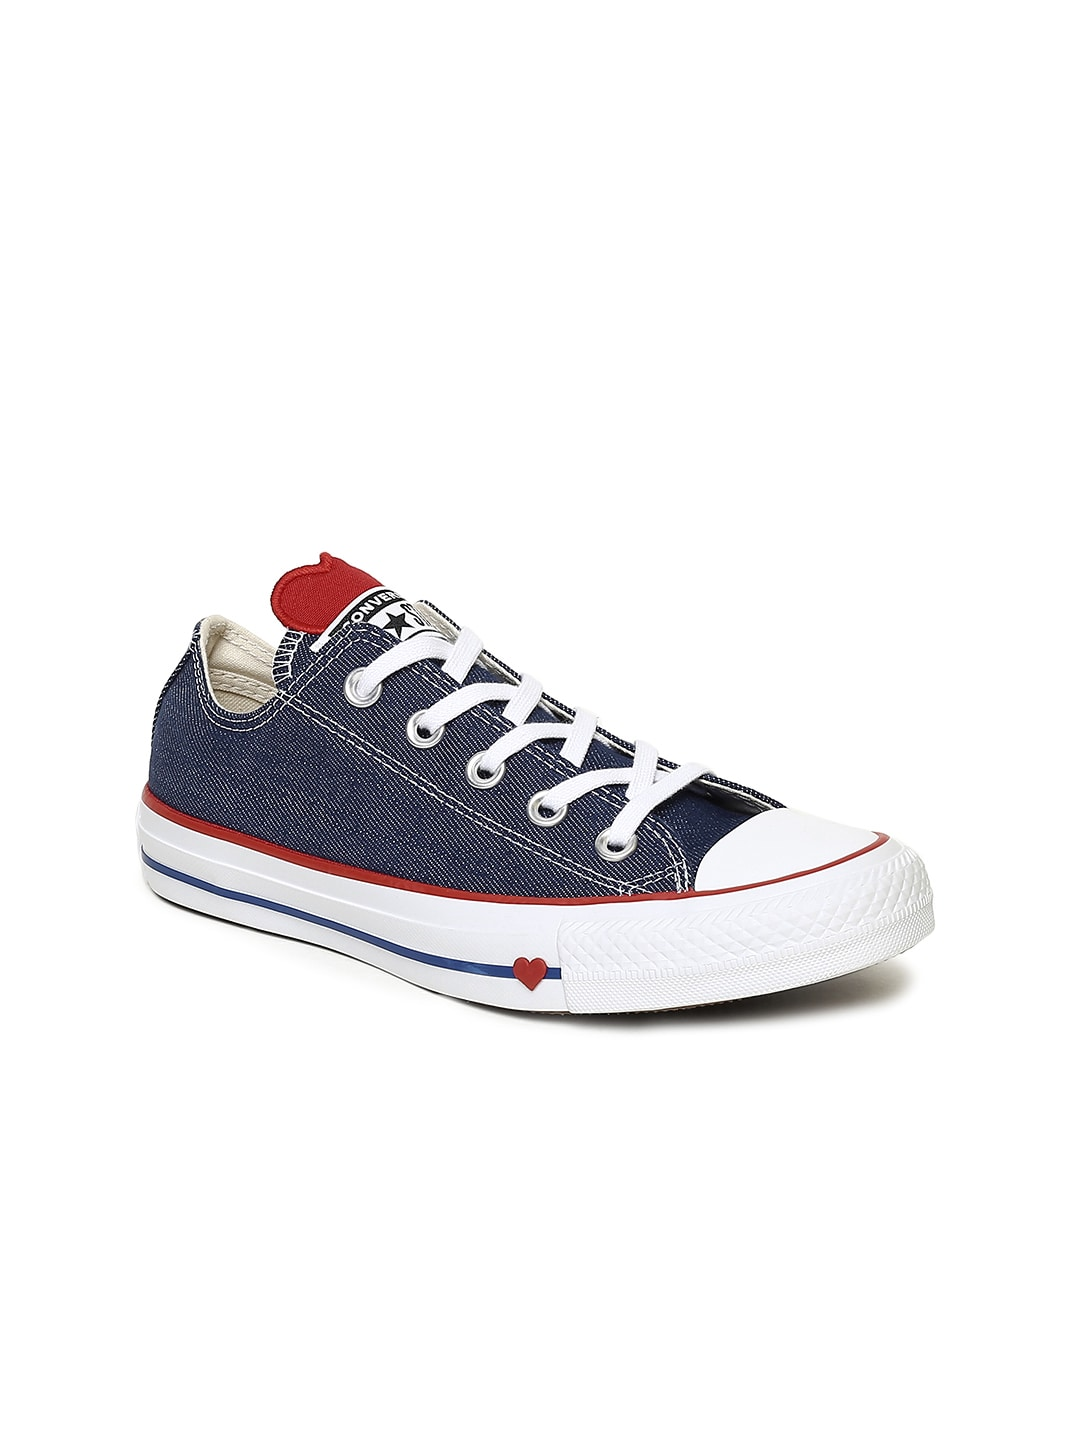 quality design 69e4a ebfea Converse Shoes - Buy Converse Canvas Shoes   Sneakers Online